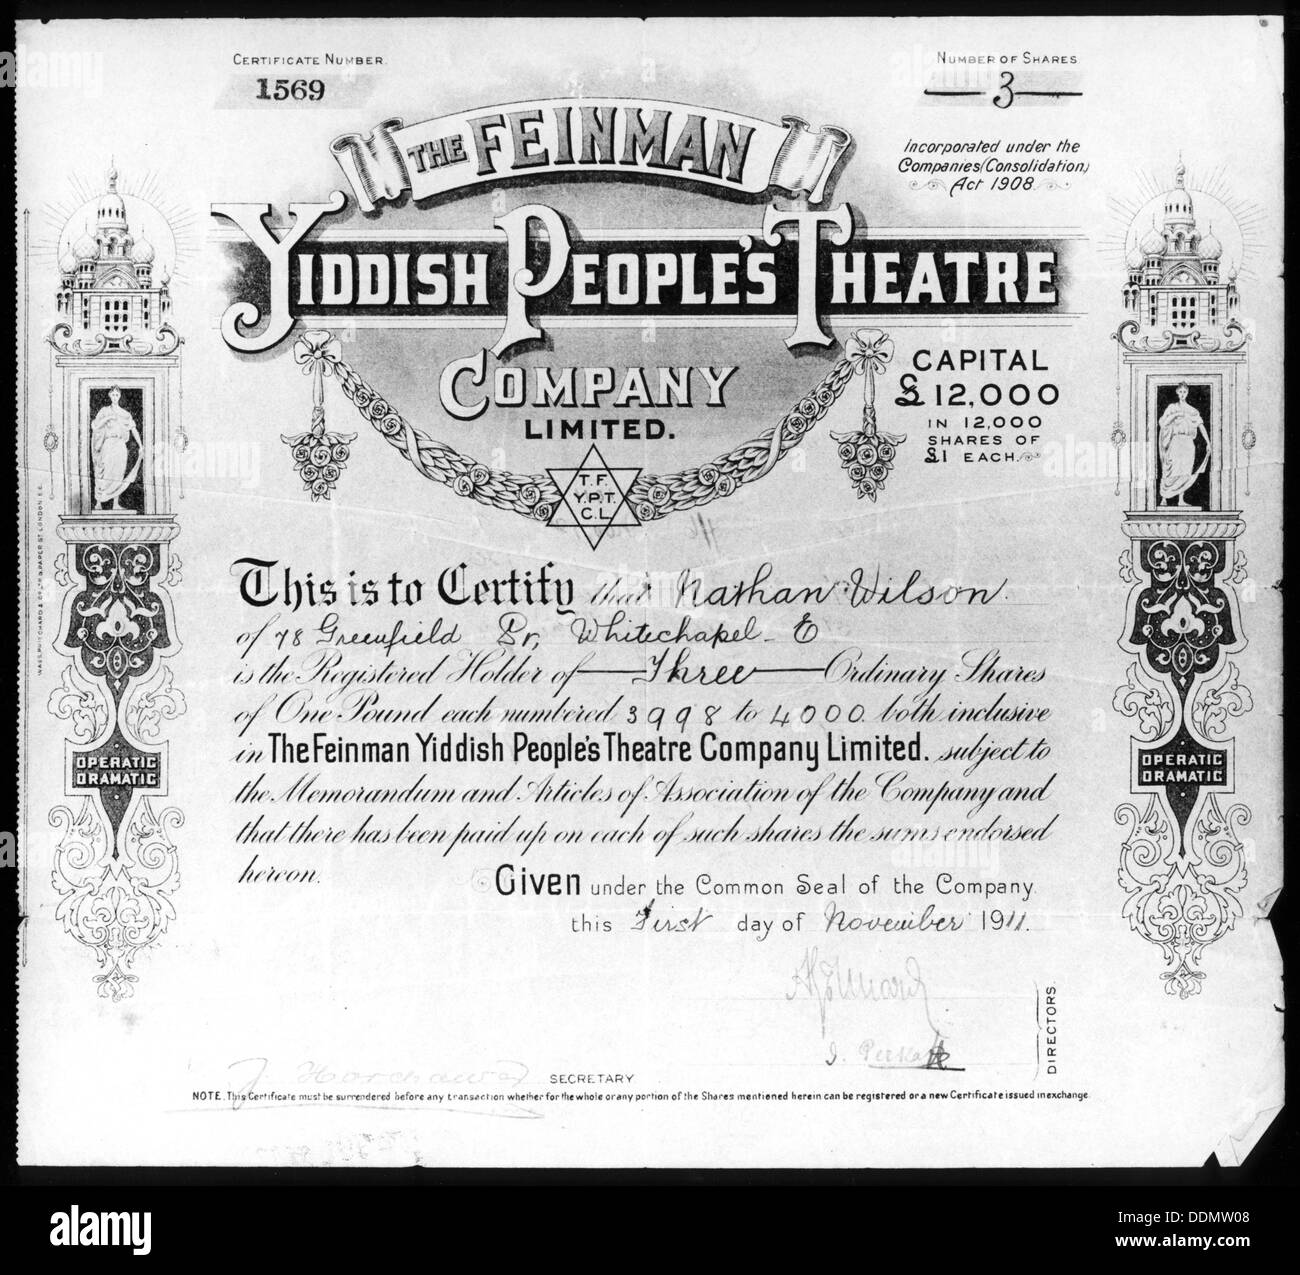 Yiddish People's Theatre share certificate, 1 November 1911. - Stock Image